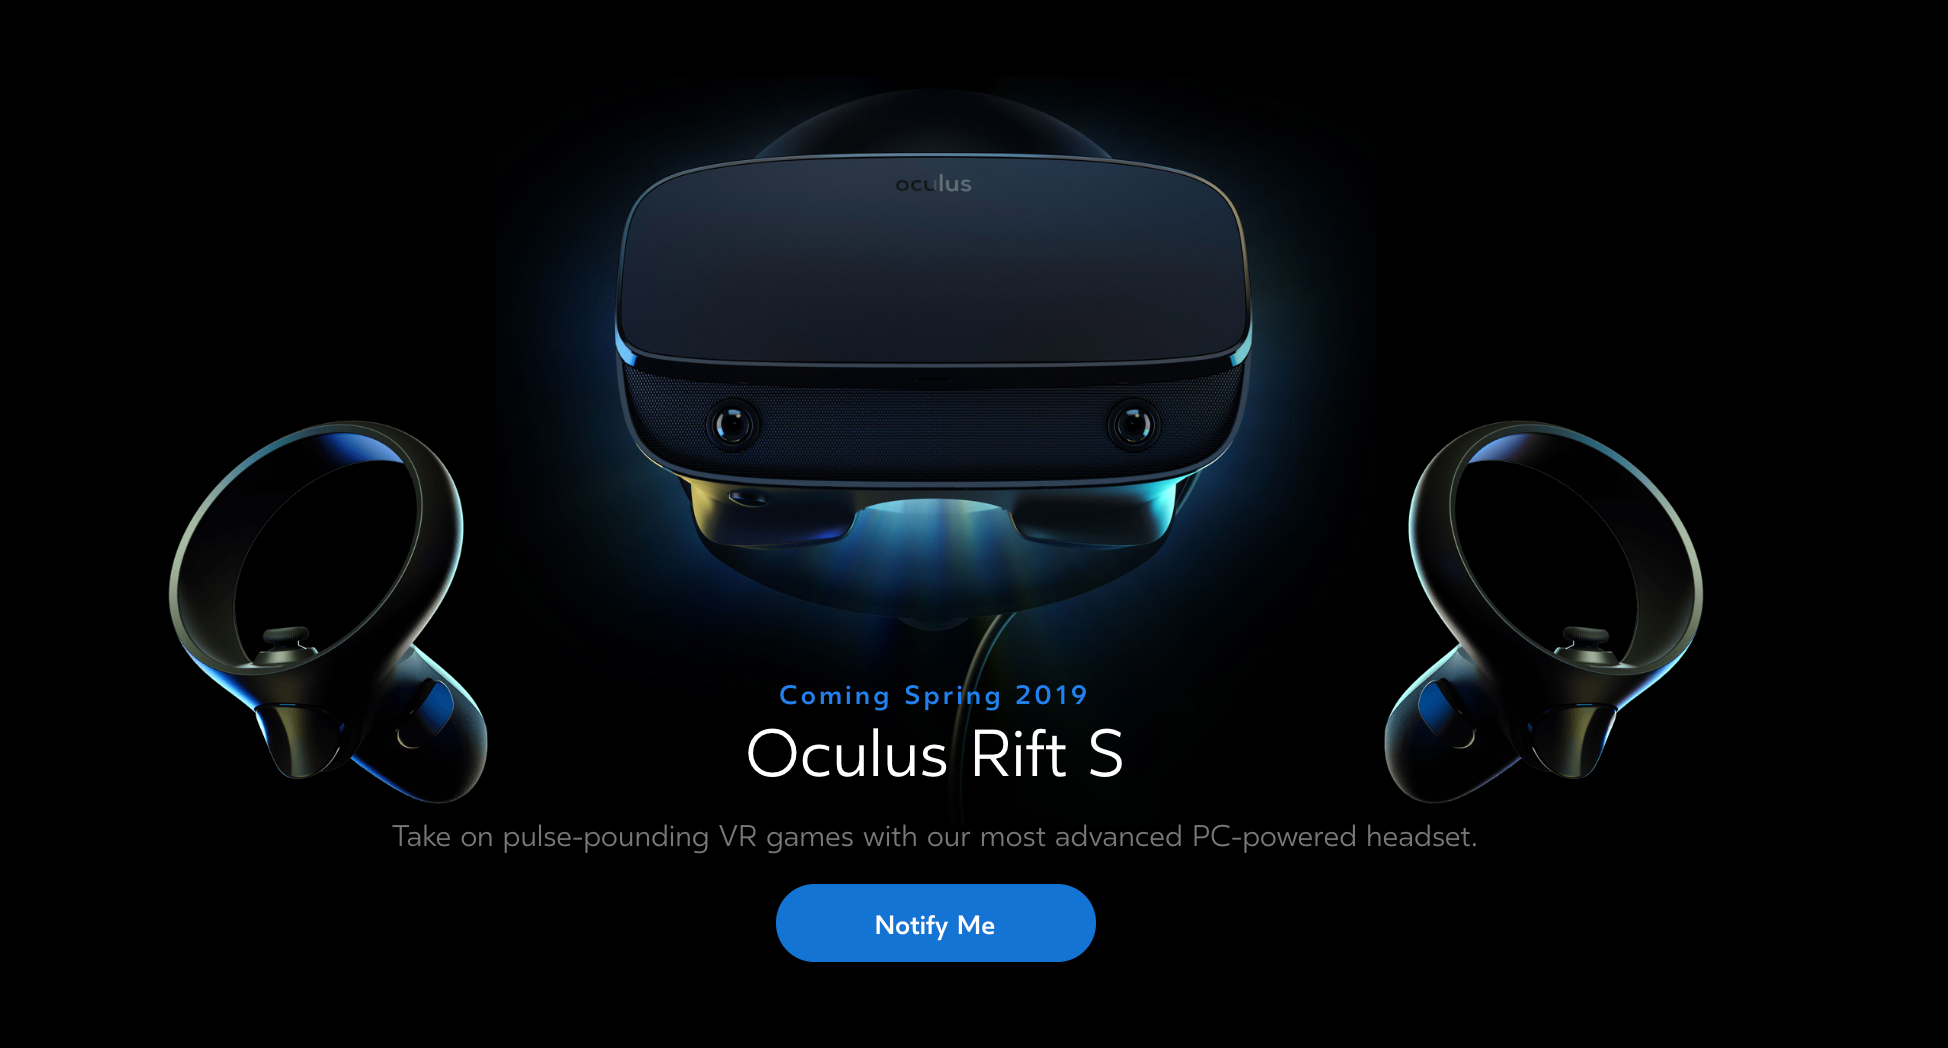 Oculus Rift S: Price, Release Date, and Available Titles for the VR Rig